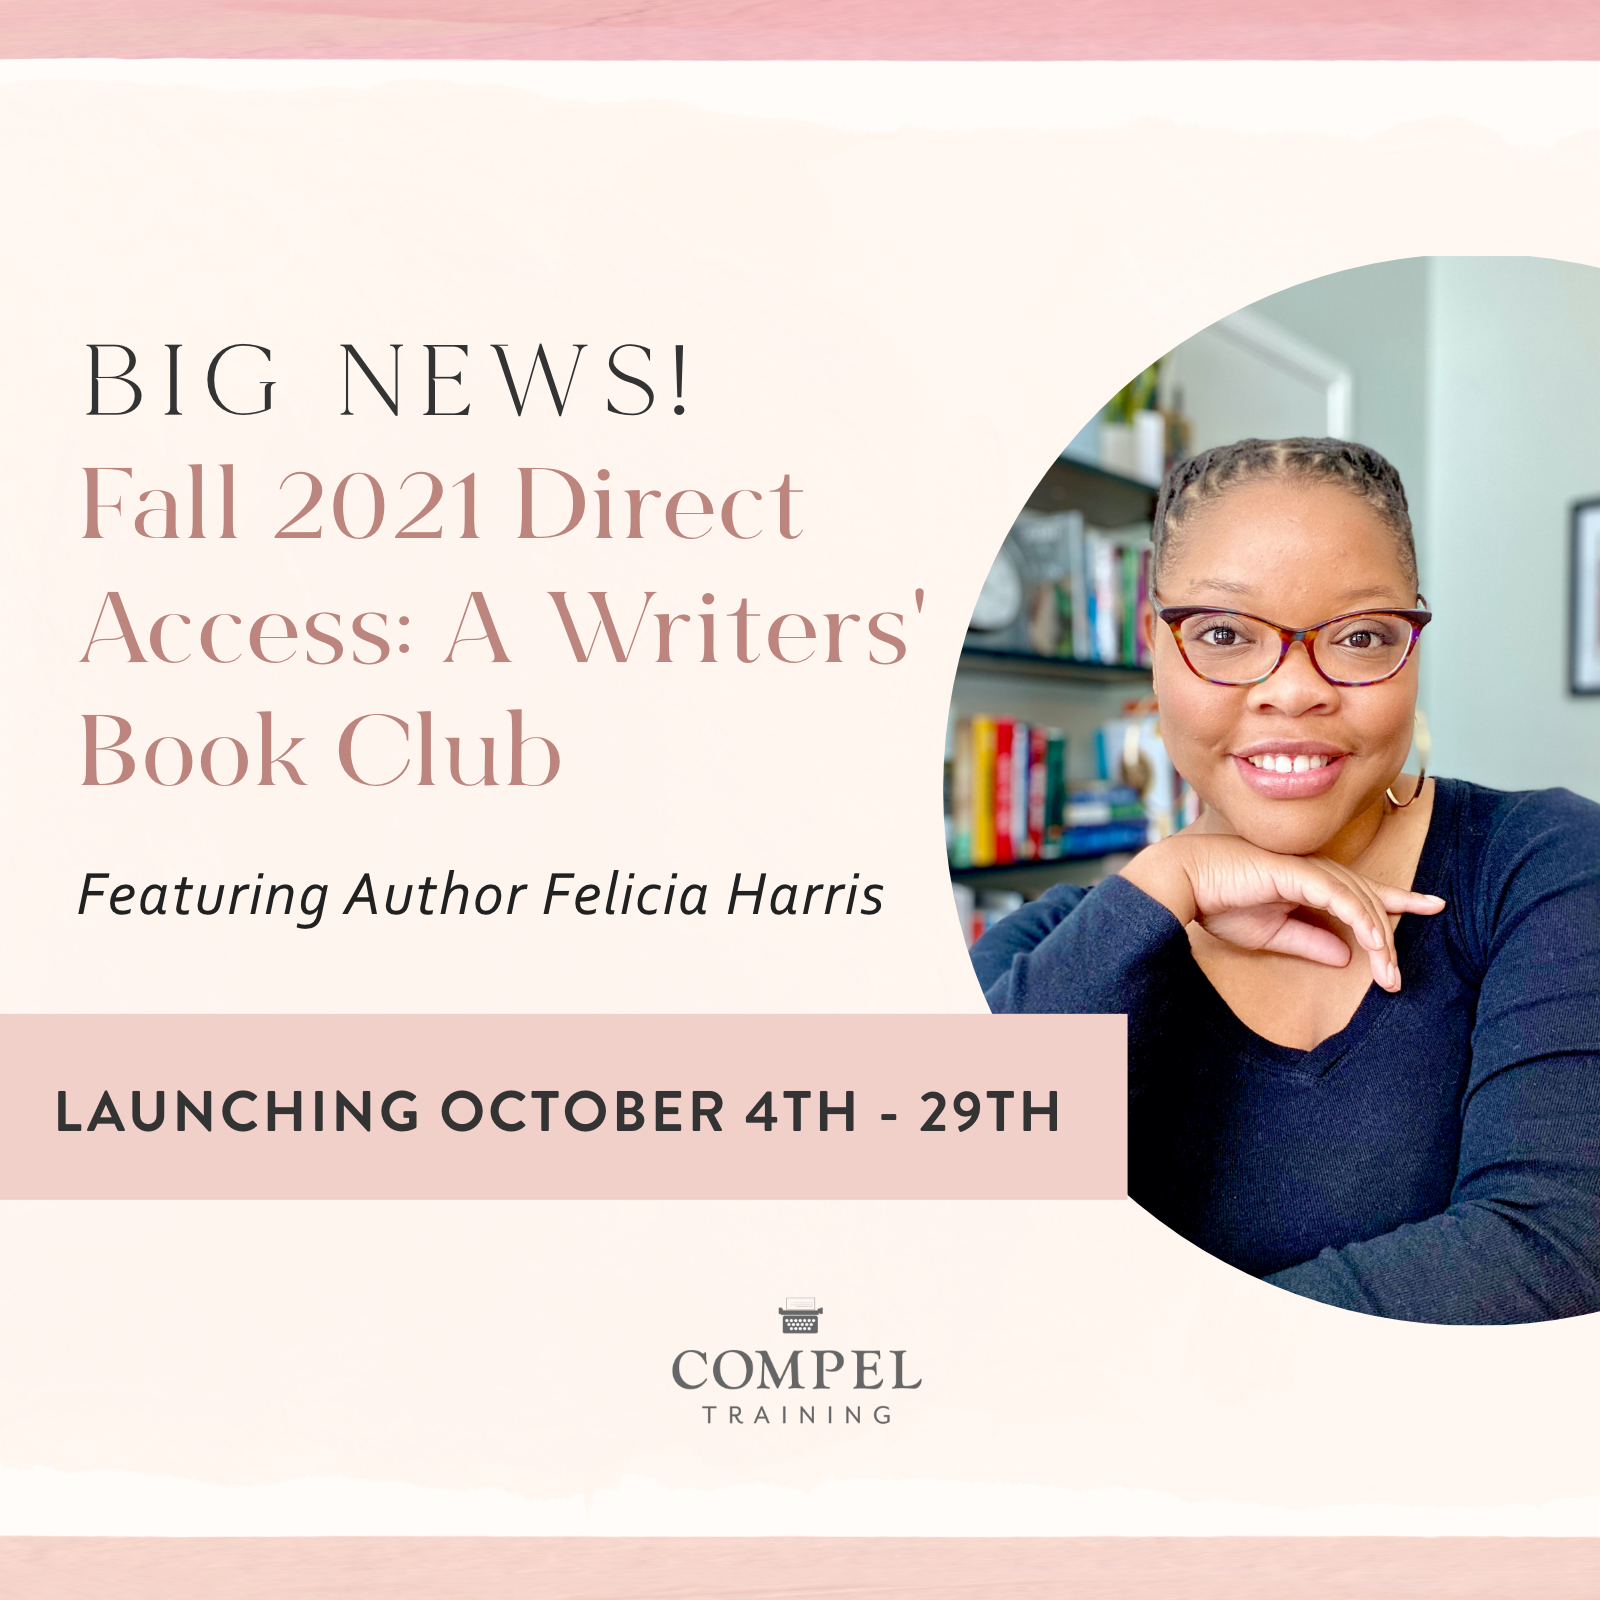 Would you benefit from learning wisdom and guidance directly from a published author and her editor?